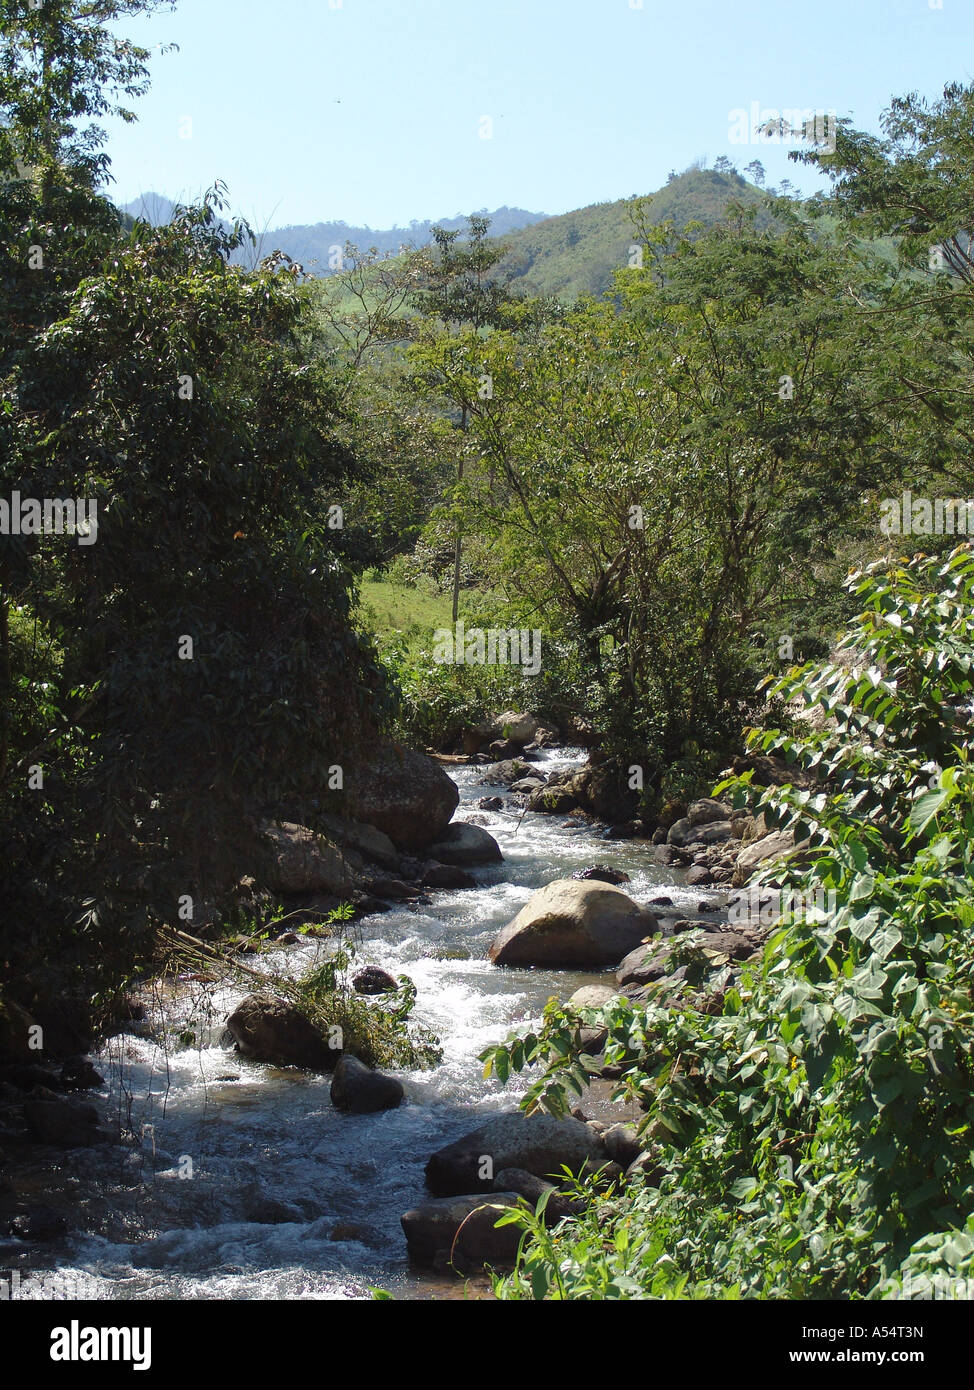 Painet ip1923 honduras pristine mountain stream agua caliente copan country developing nation less economically - Stock Image